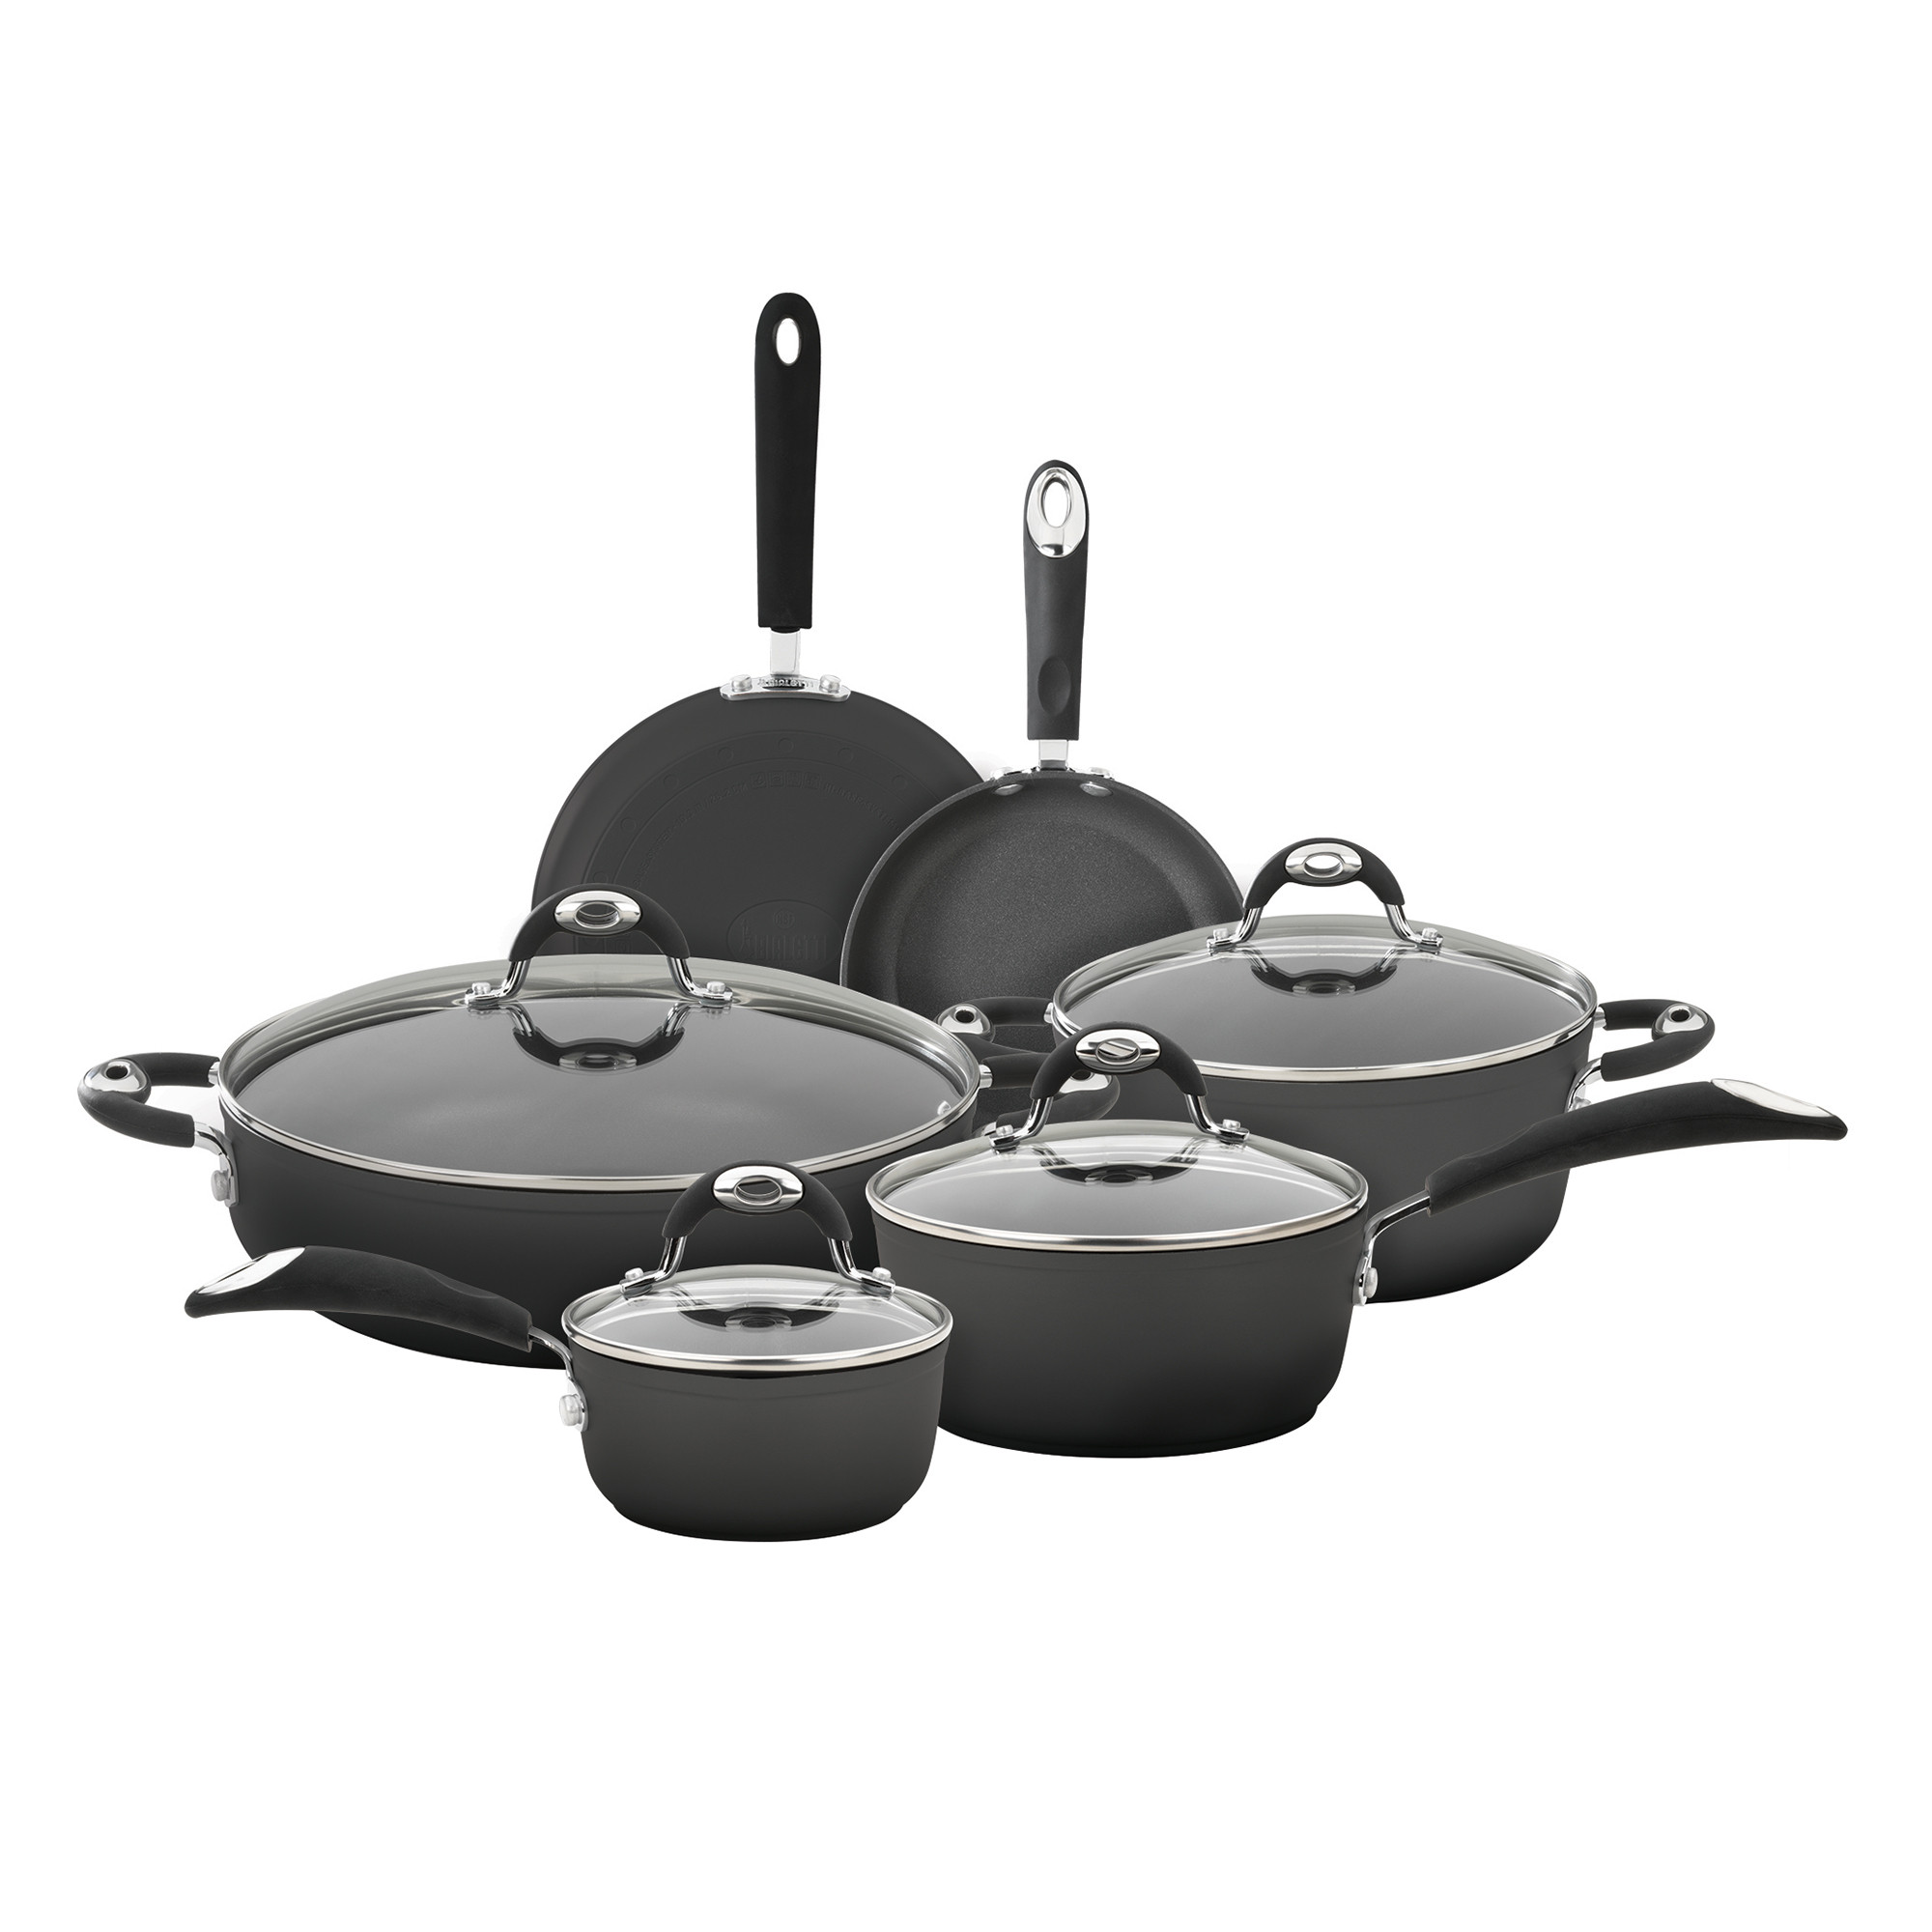 Bialetti Aluminum 10-piece Cookware Set with Silicone Han...